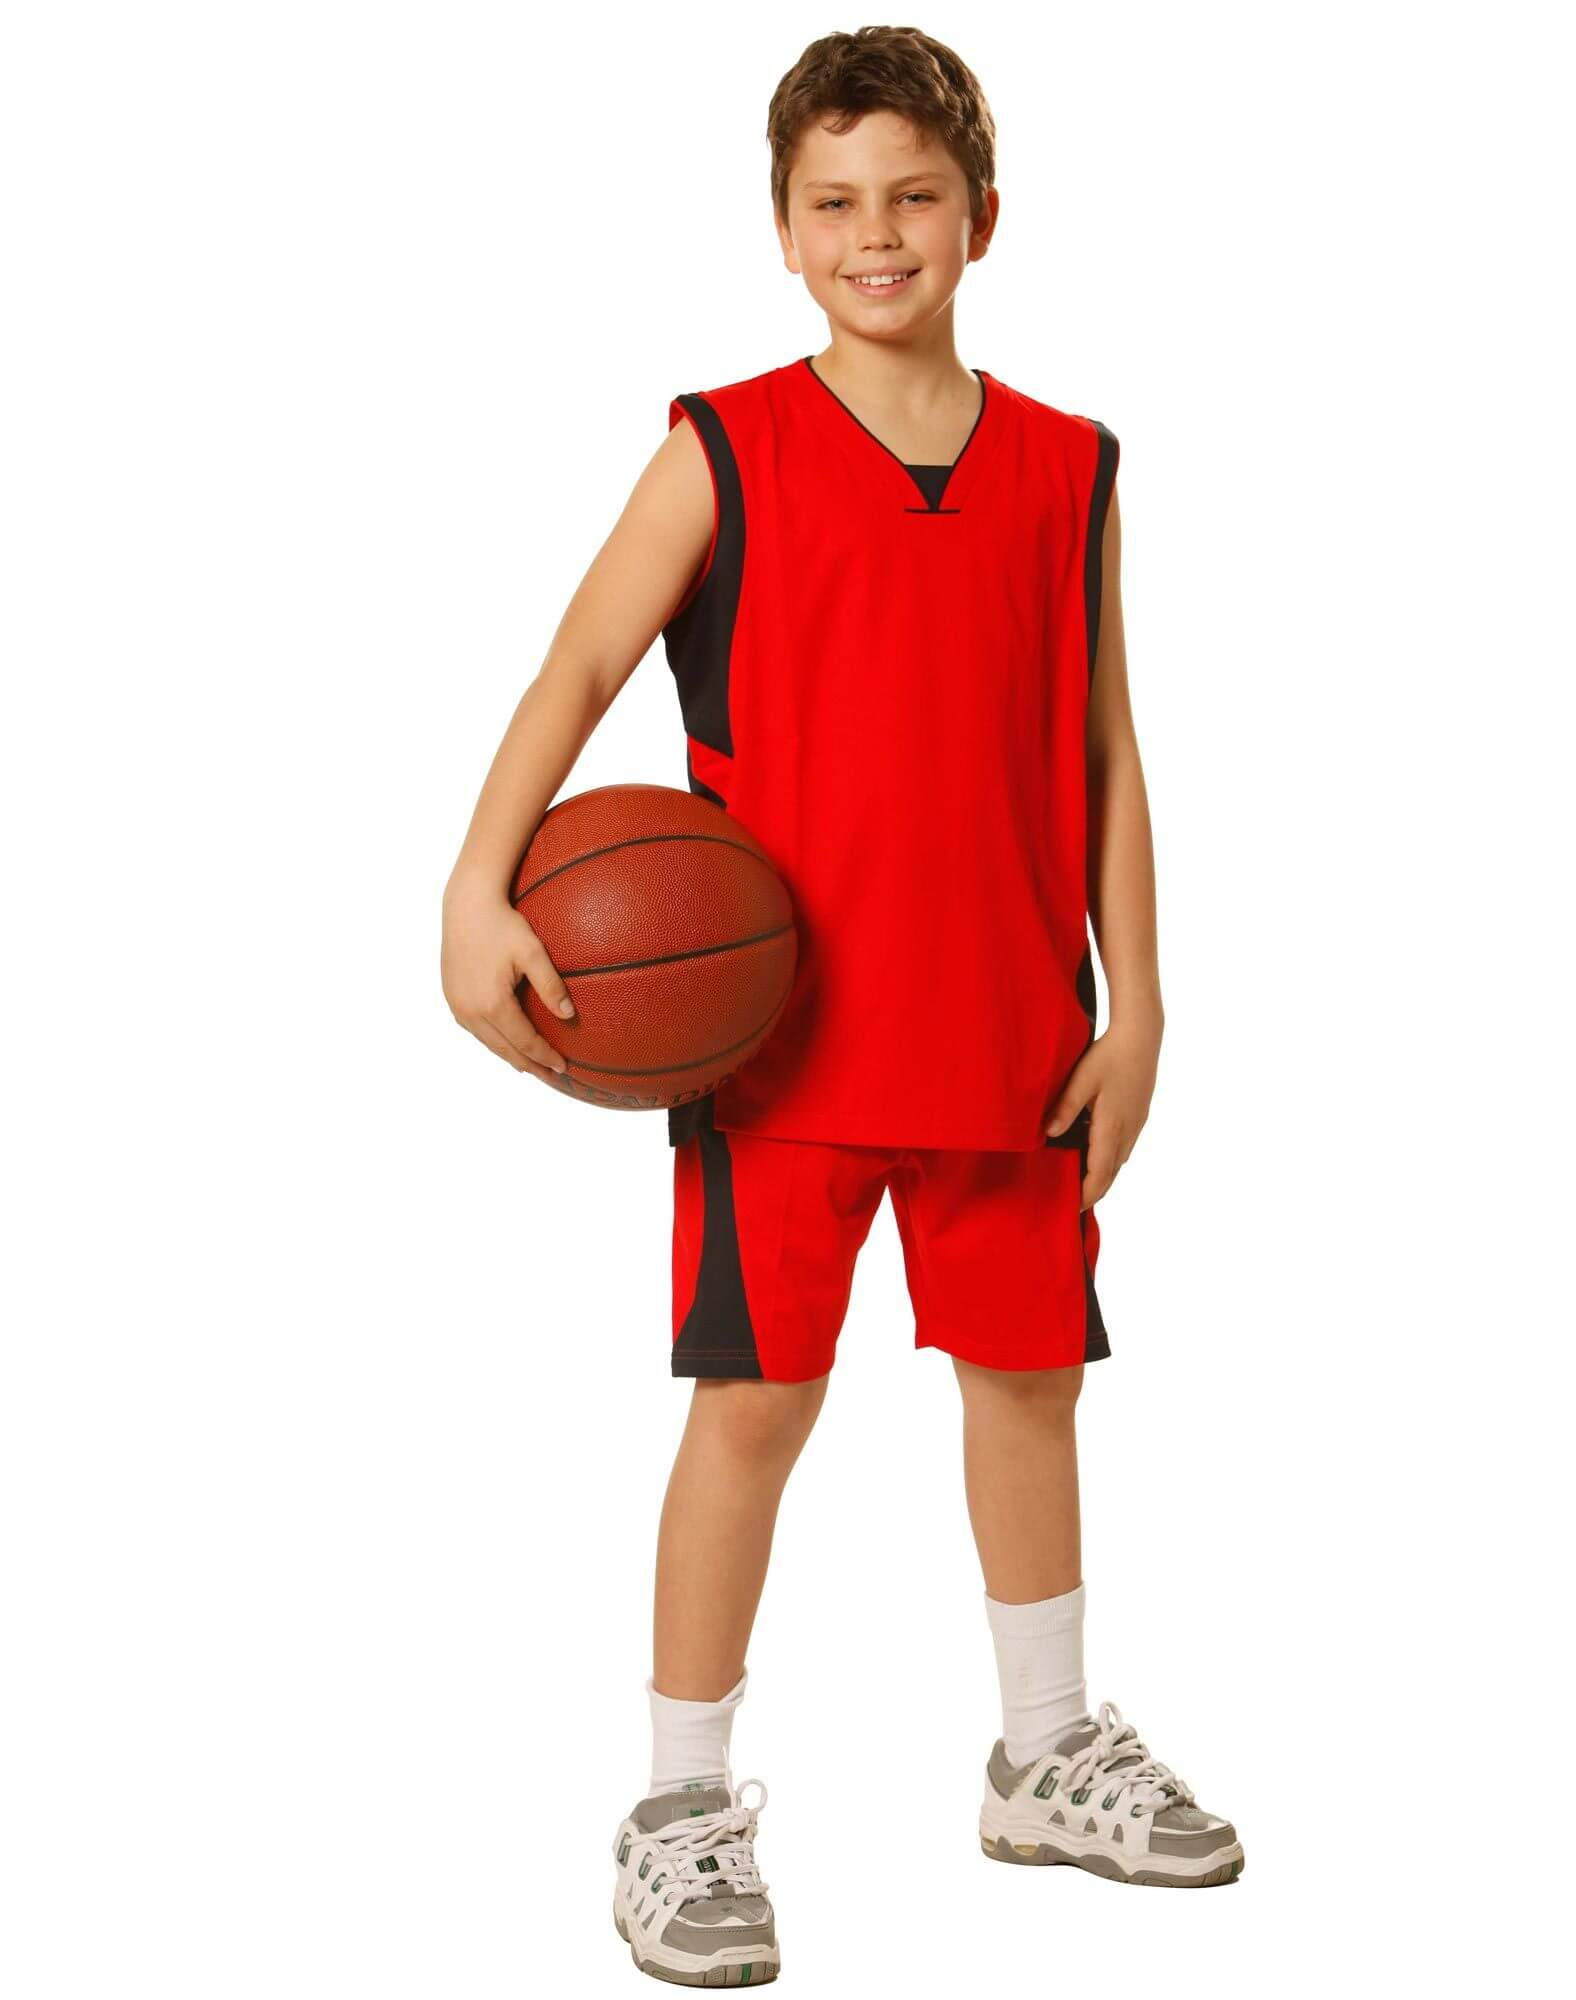 Kids Basketball Jerseys Manufacturers in Cameroon